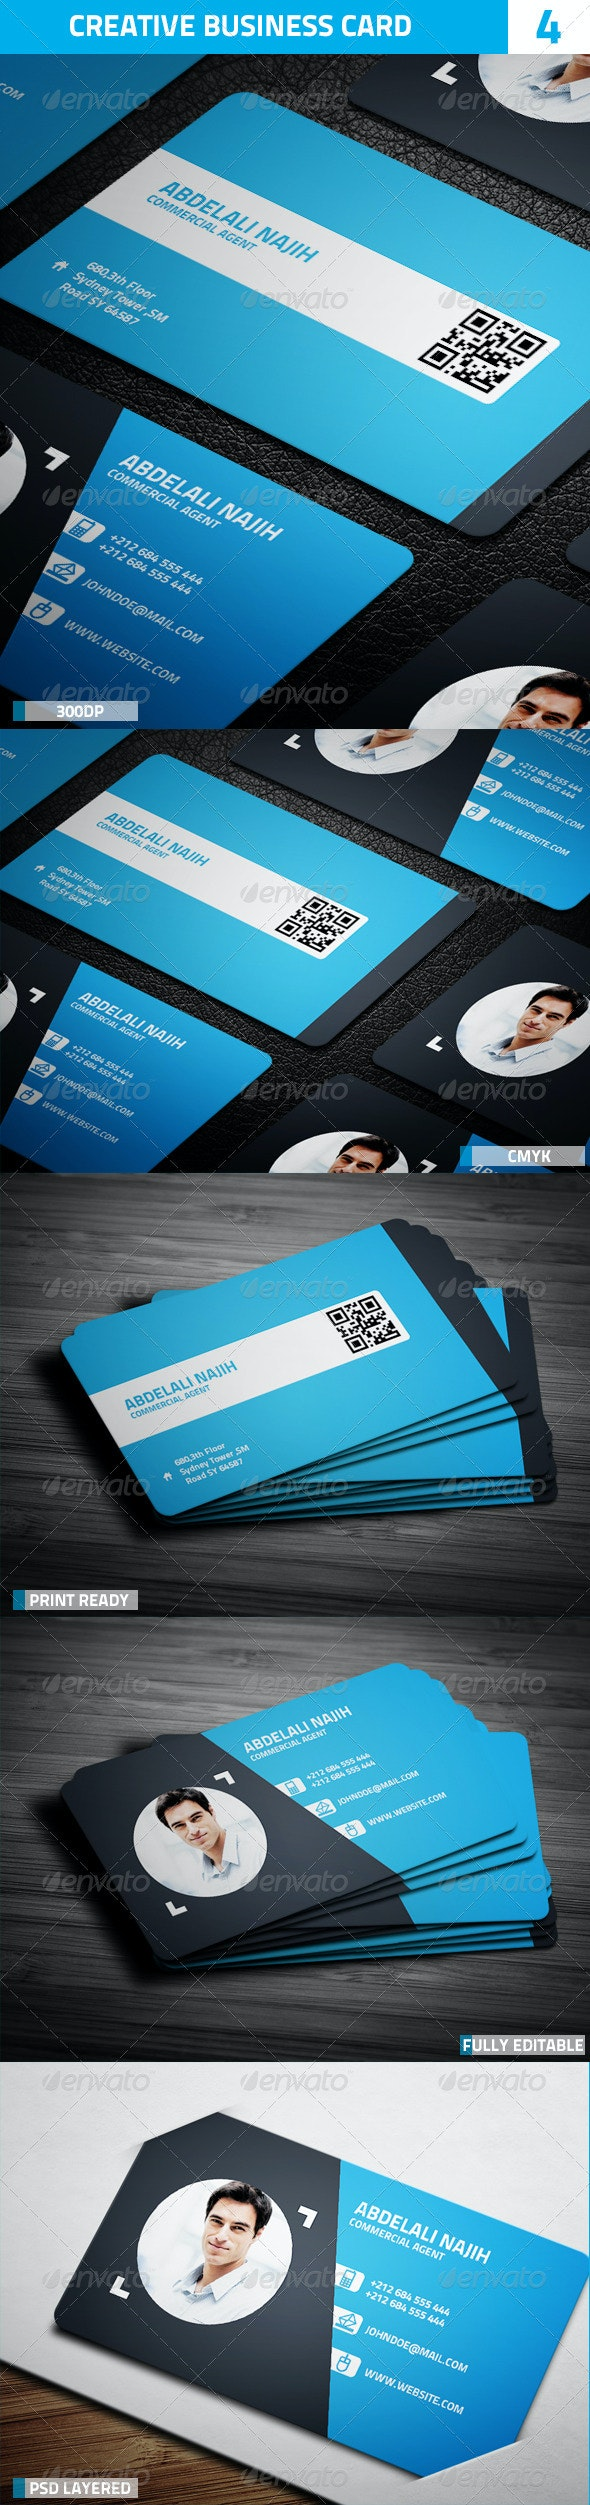 Creative Business Card 4 - Creative Business Cards